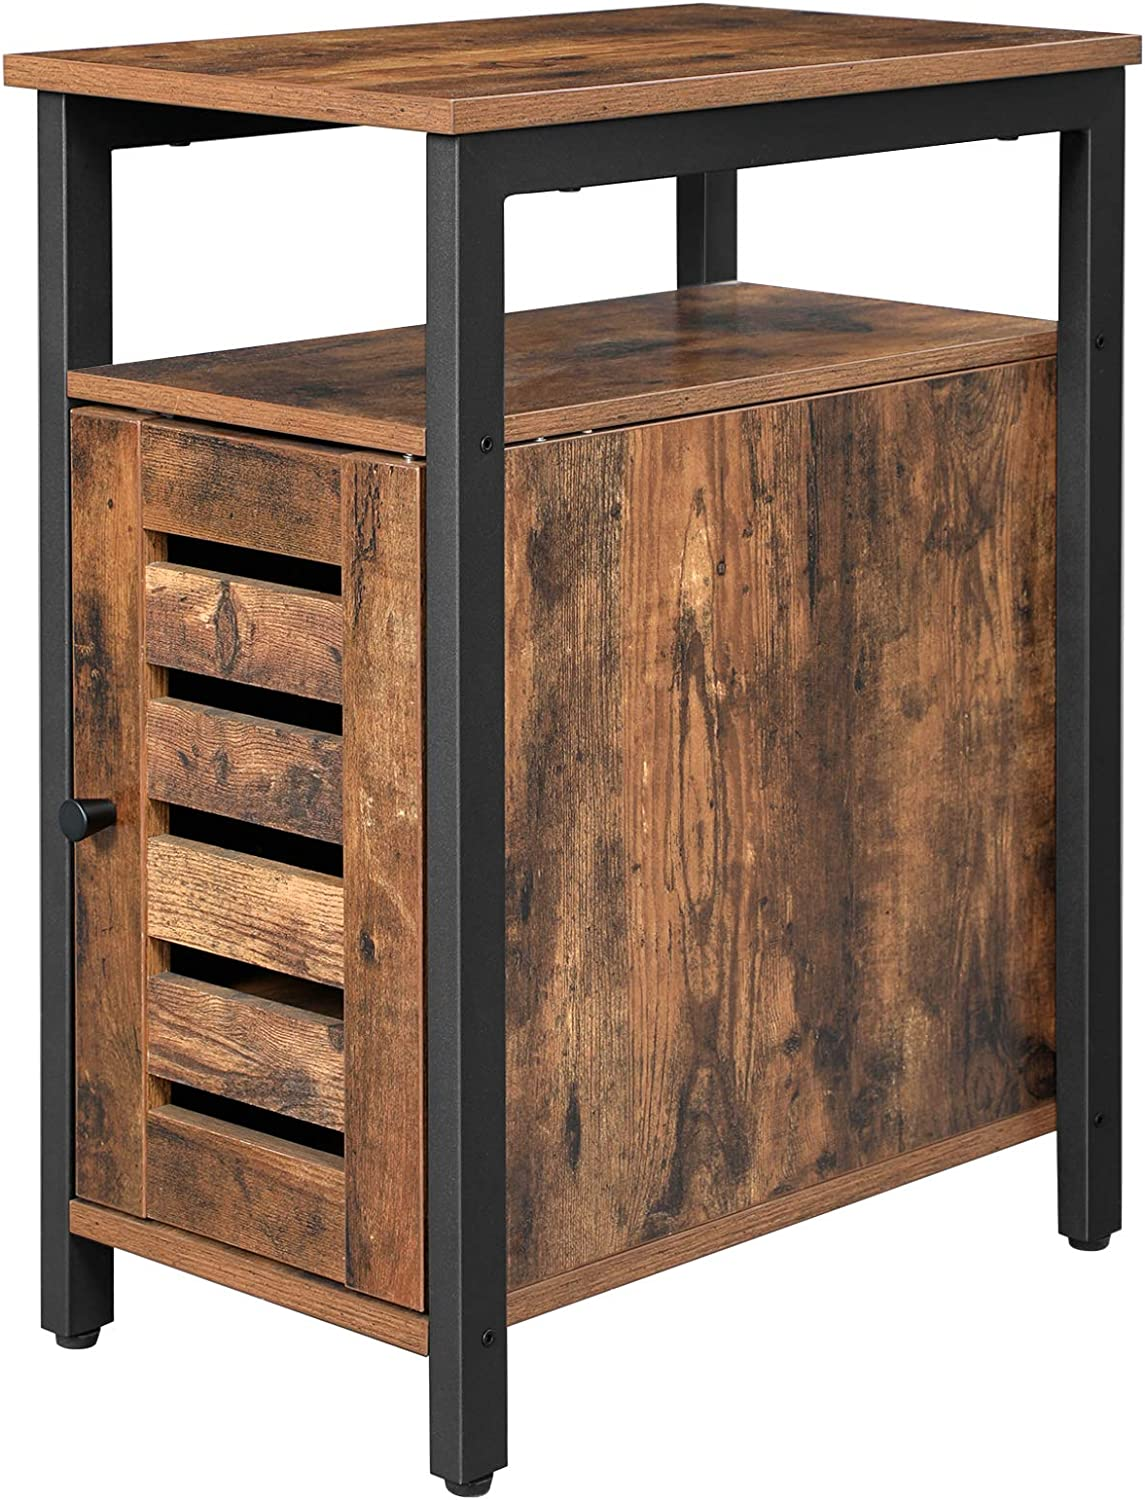 VASAGLE Lowell Side Table, Multipurpose Storage Cabinet with Open Shelf, Inner Adjustable Shelf, Steel Frame, Living Room Office, 11.8 x 19.7 x 23.6 Inches, Industrial Style, Rustic Brown ULET61BX